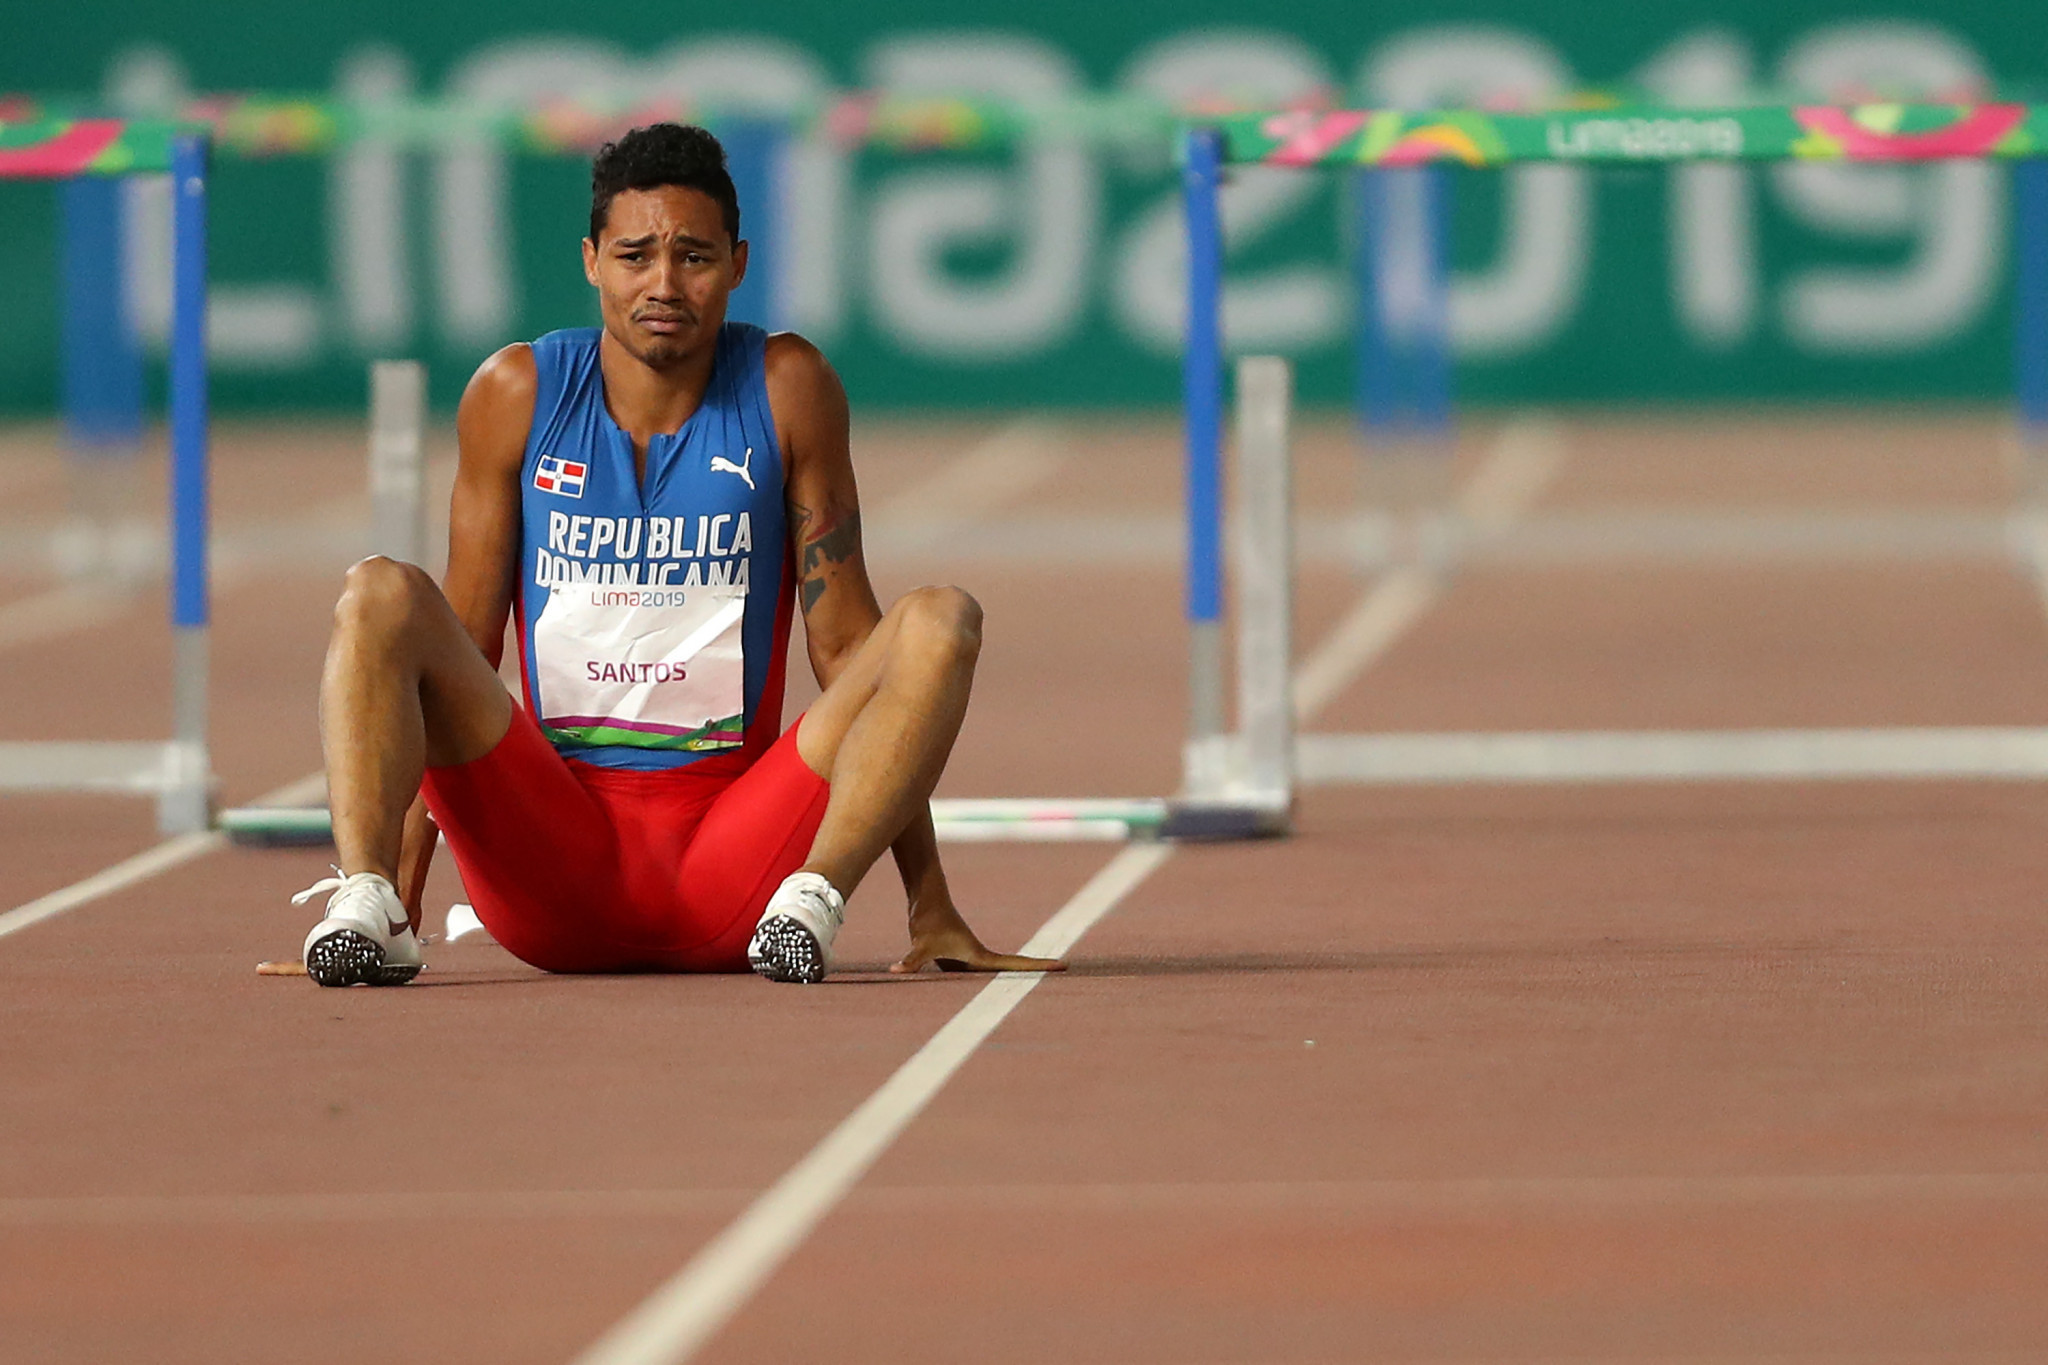 Juander Santos hit the final hurdle to move from first to last ©Getty Images